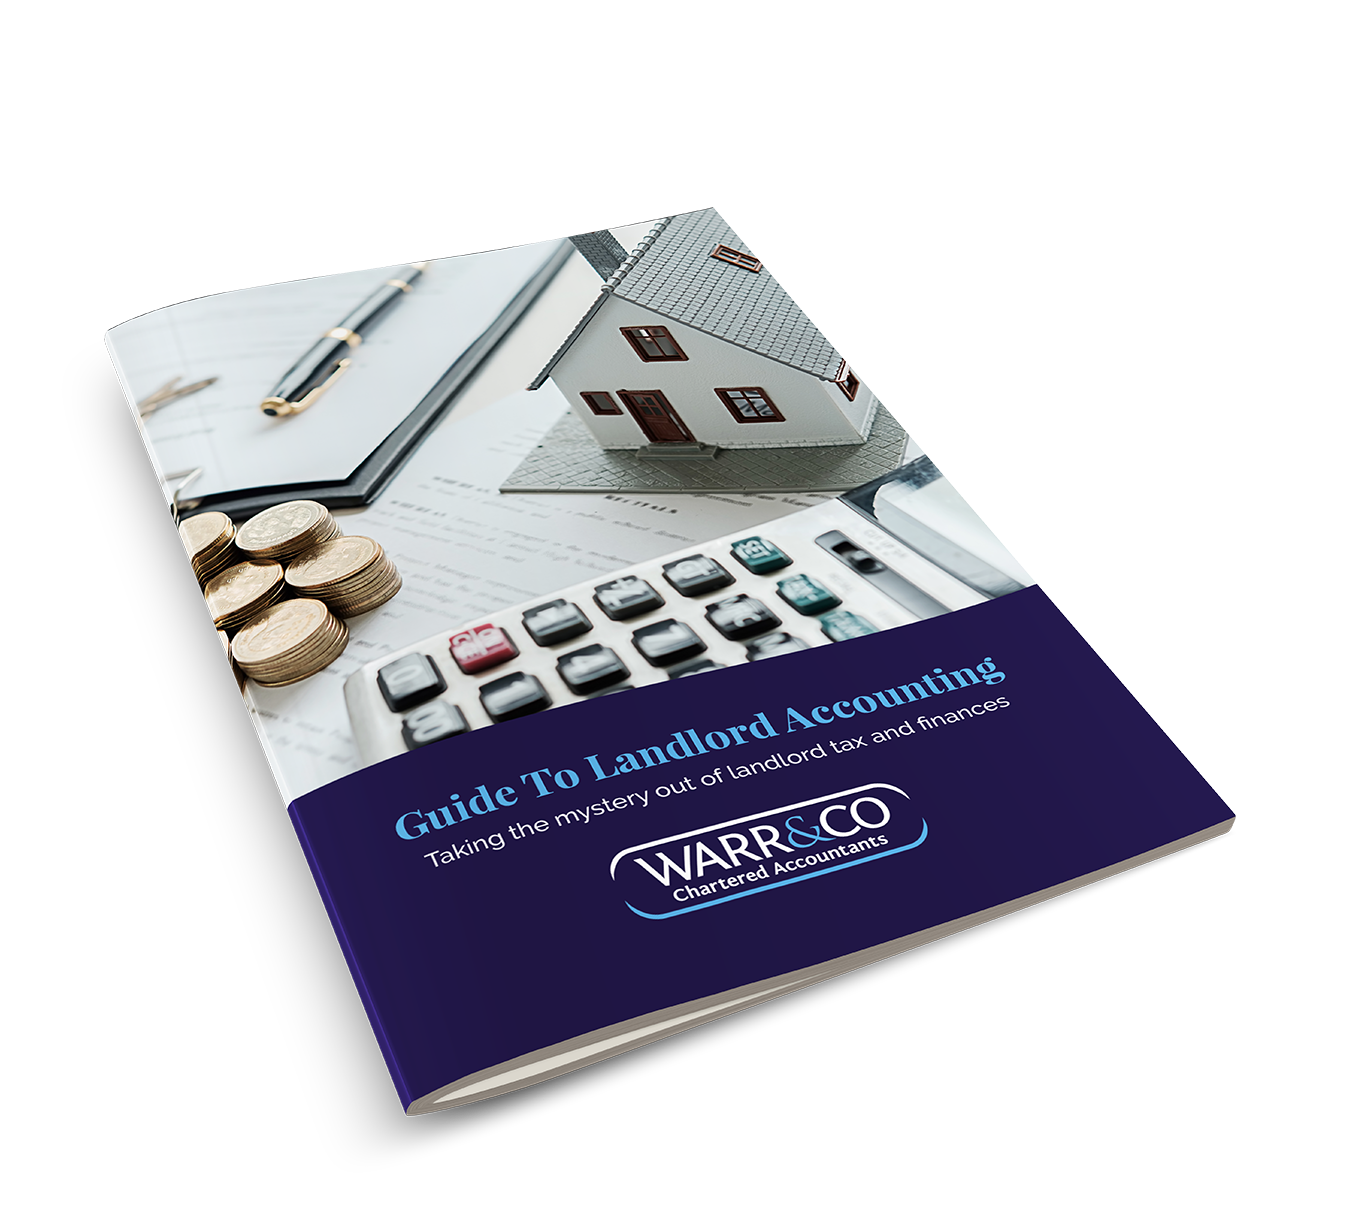 Landlord accounting Guide